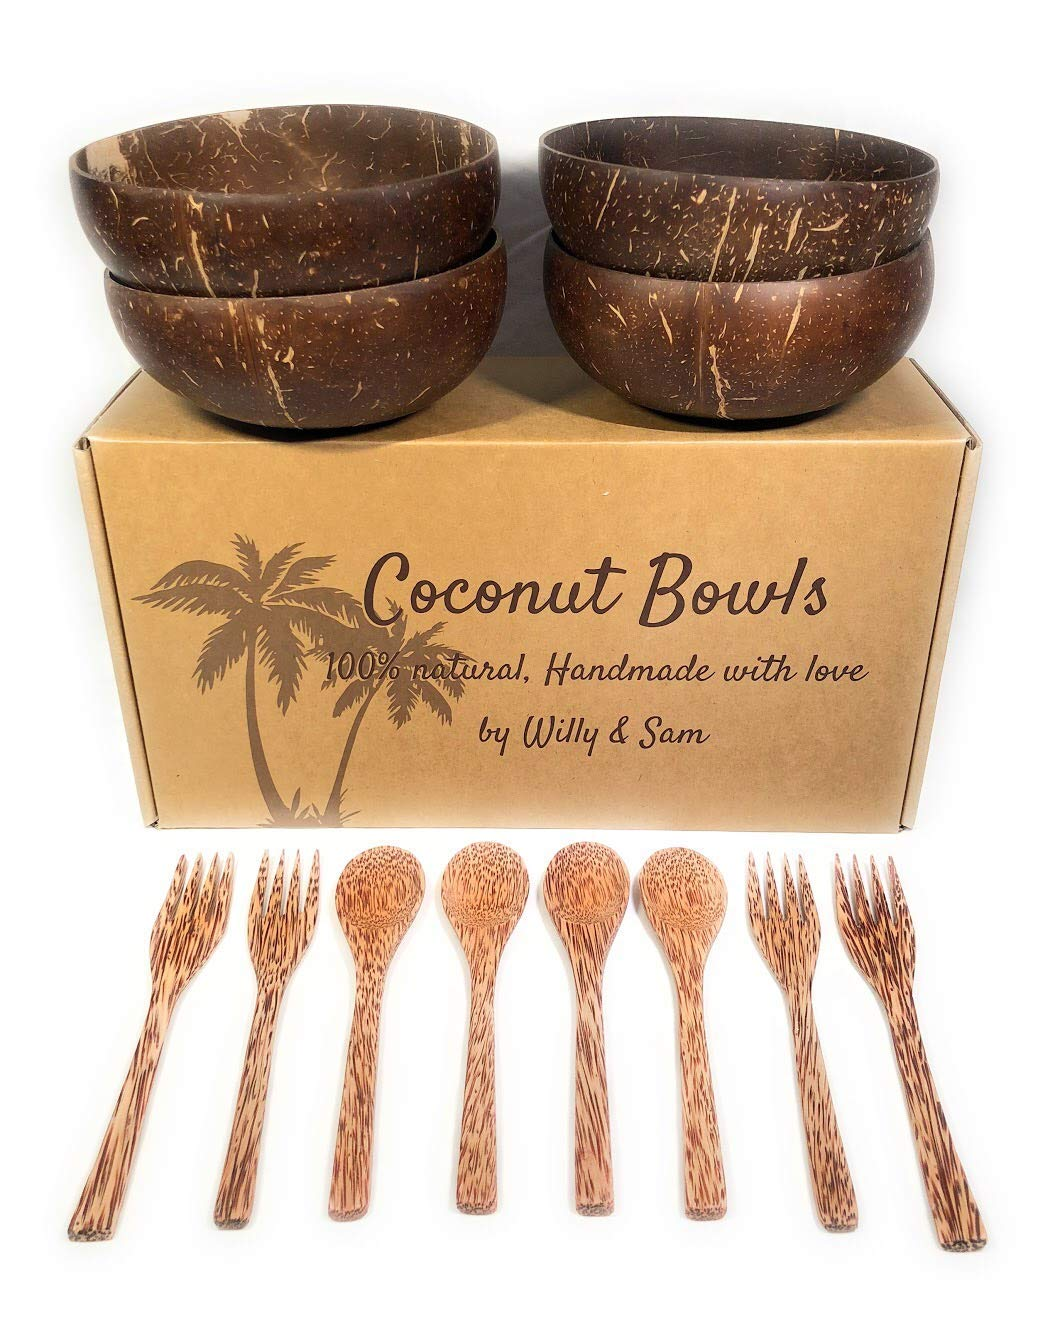 Coconut Bowl, spoon and fork 100% natural. Includes 4 Coconut Bowls, 4 Spoons and 4 Forks | Handmade with love | Ideal for making organic Breakfast, Smoothie, Salad or Buddha Bowl. Perfect Gift